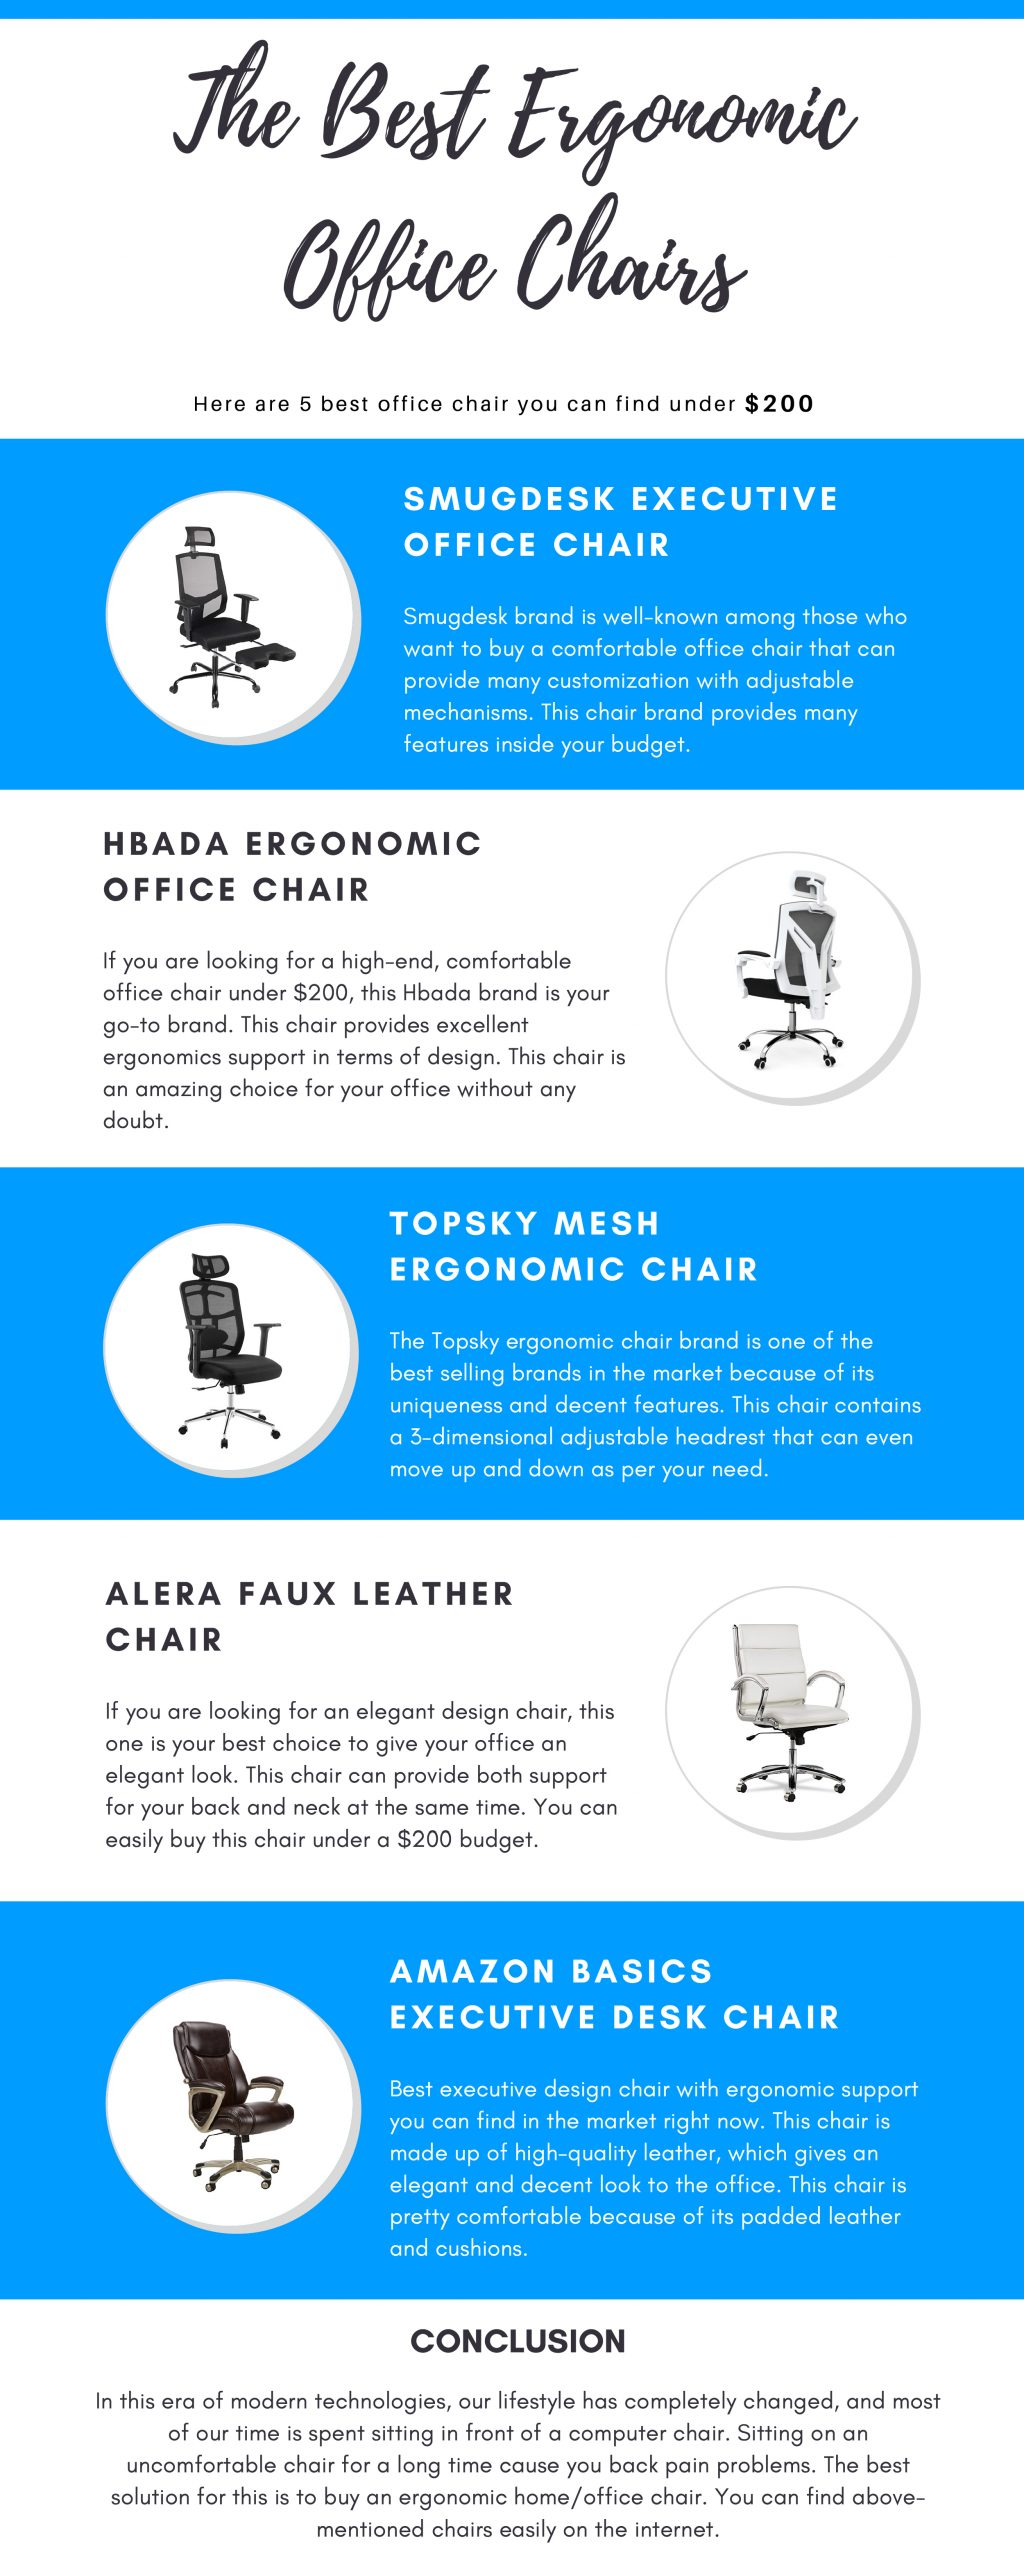 image - The Best Ergonomic Office Chairs [Infographic]